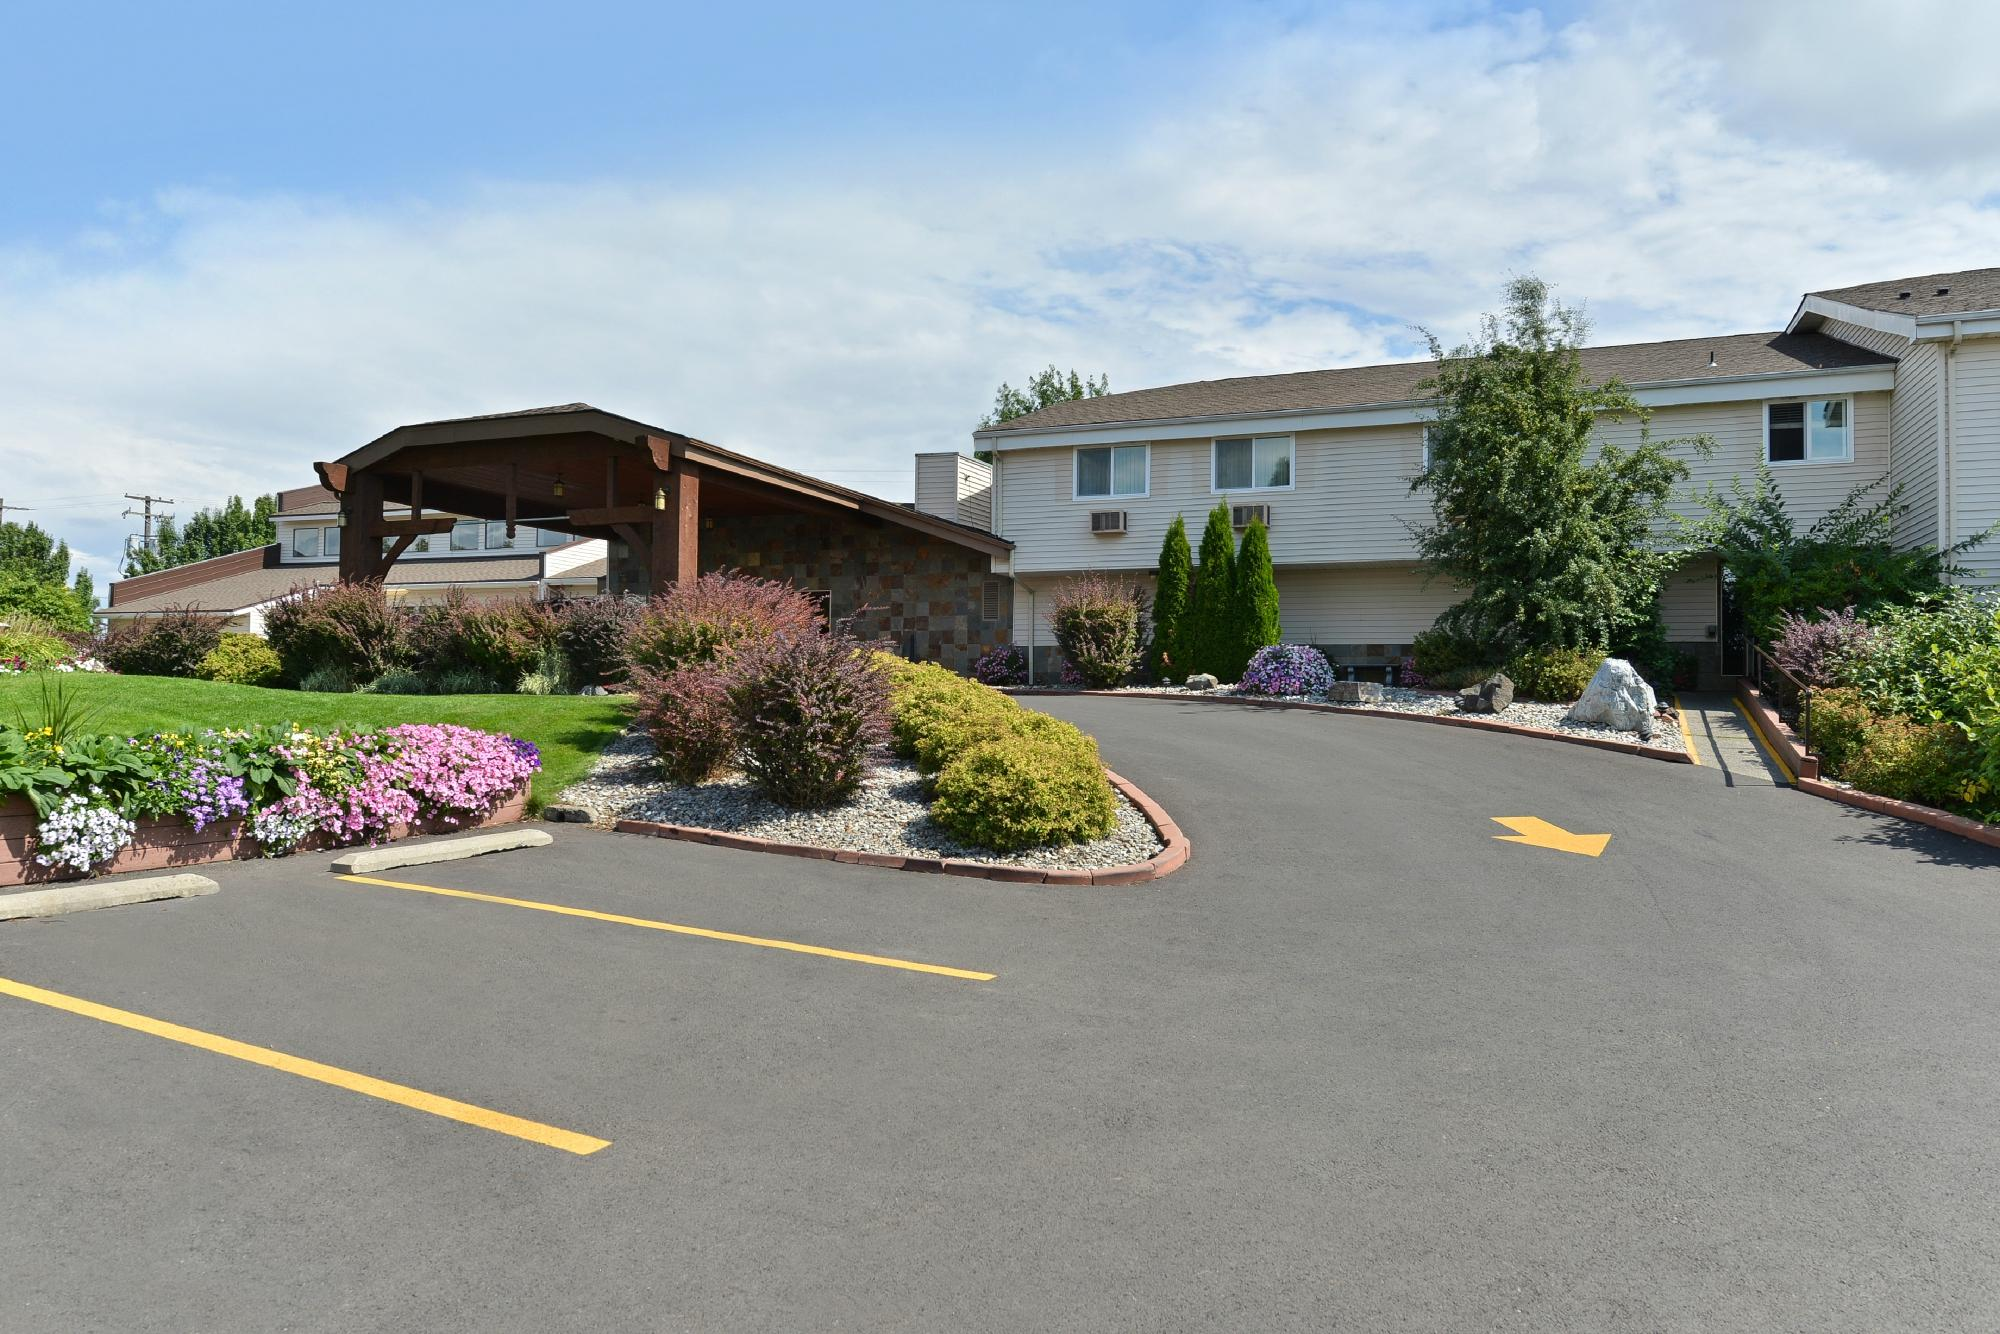 Quality Inn & Suites Coeur d'Alene Photo Courtesy of Quality Inn & Suites Coeur d'Alene